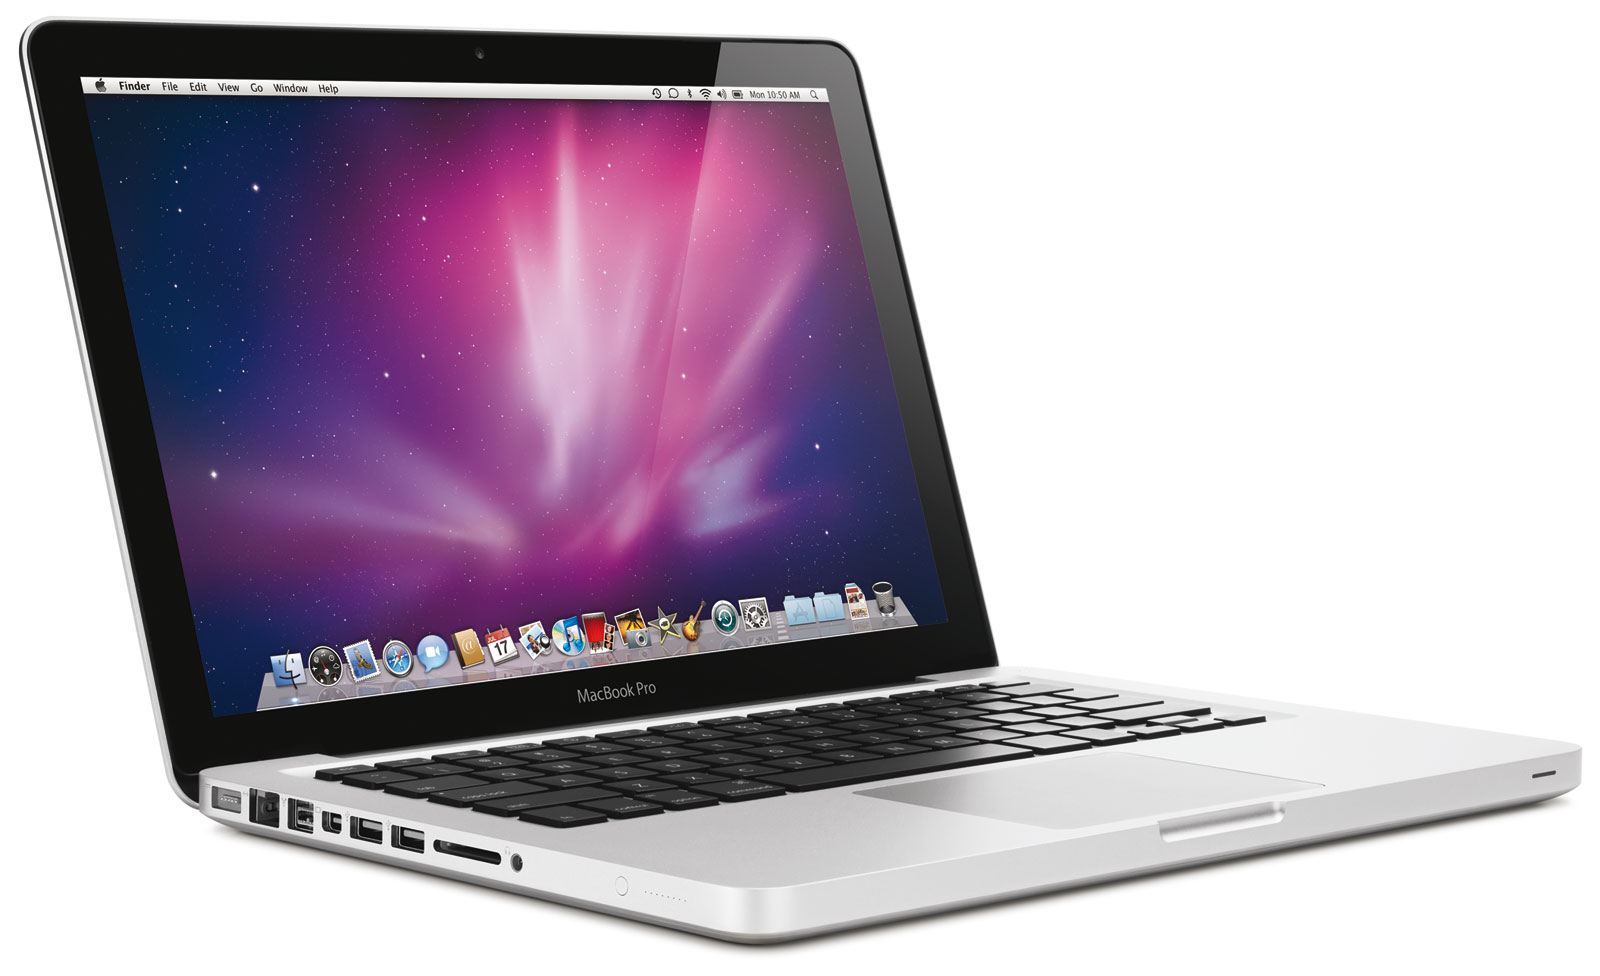 Advantages of MacBook Air over Traditional Laptops